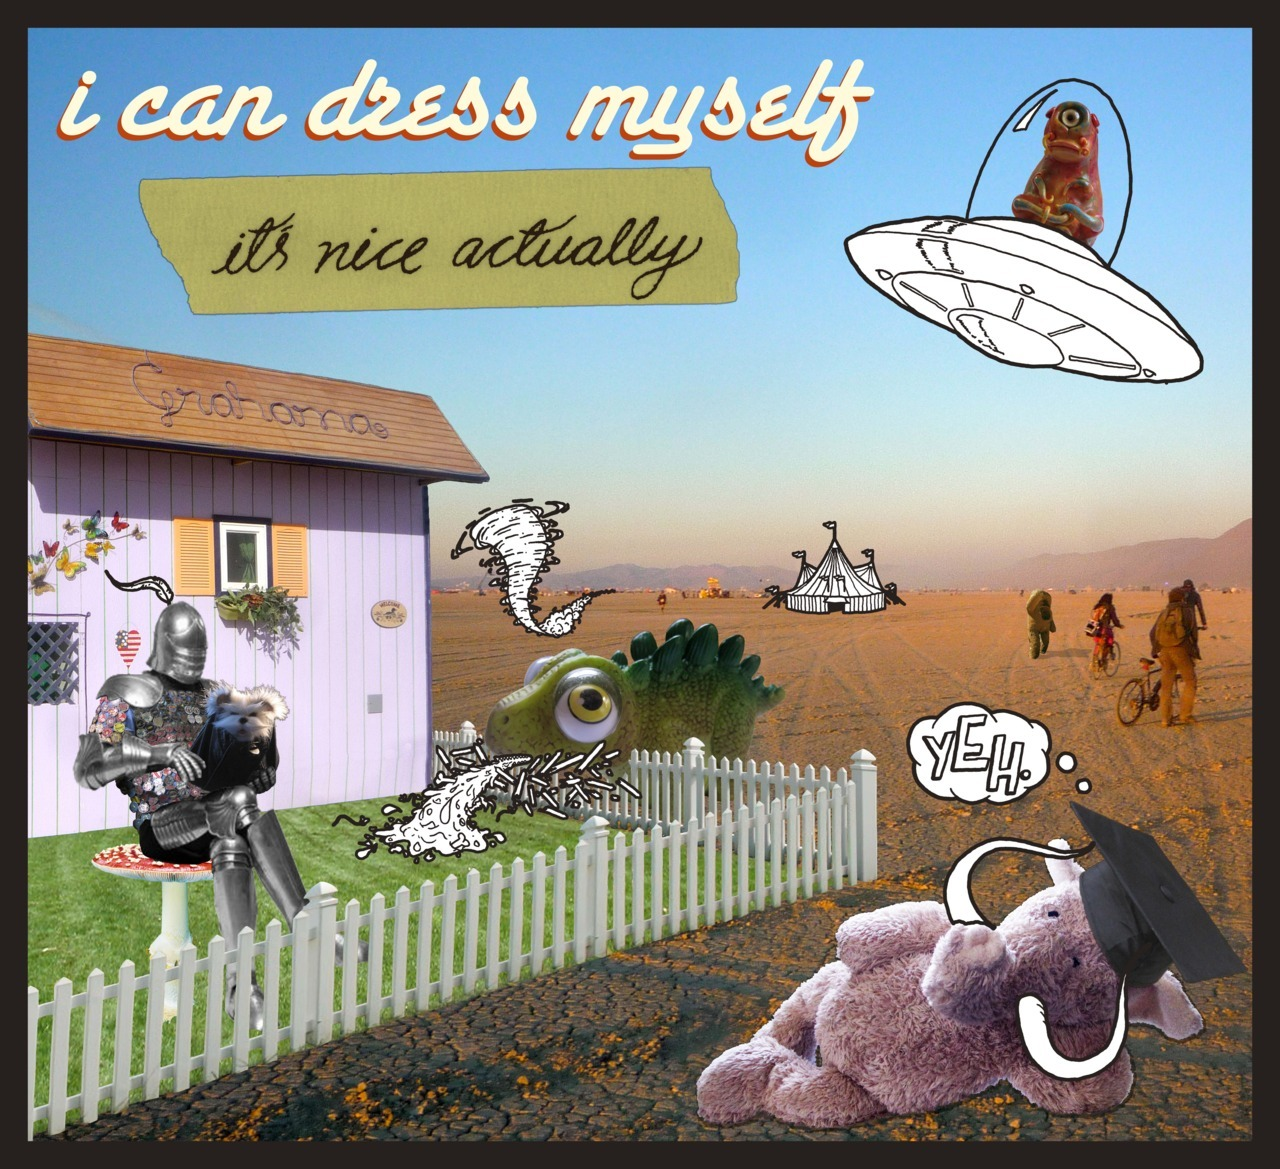 """it's nice actually,"" the debut album from i can dress myself, available April 7th, 2012. Album artwork by Graham McLeod and Max Poynton."